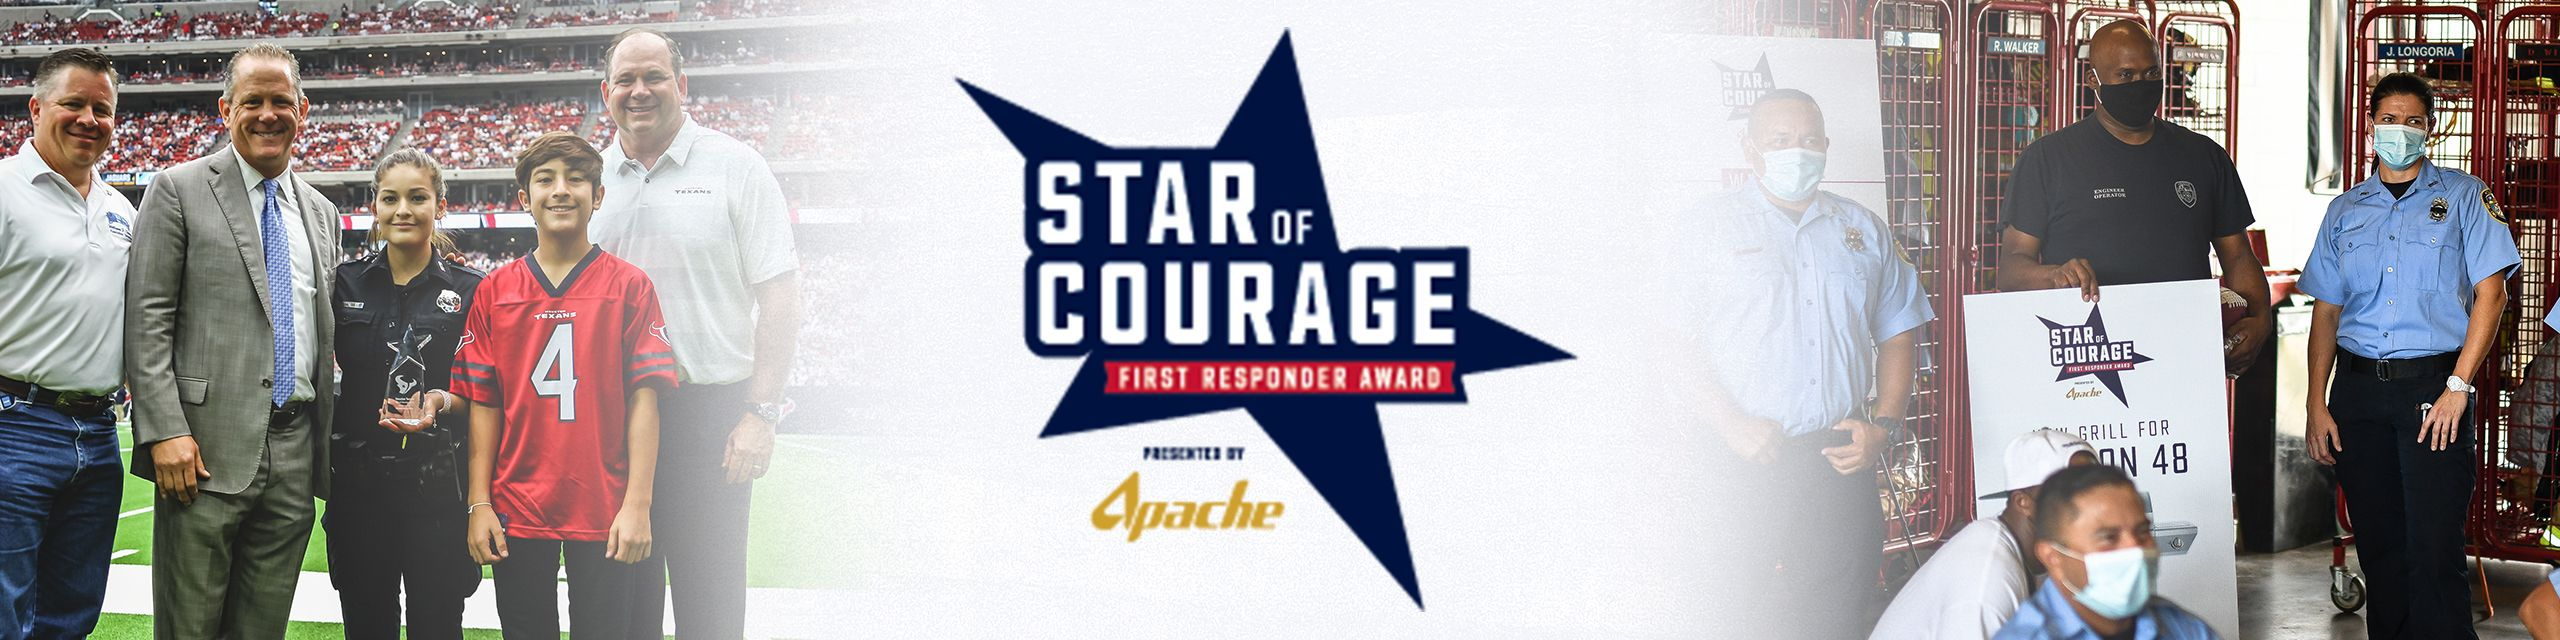 Star of Courage. First Responder Award. Presented by Apache